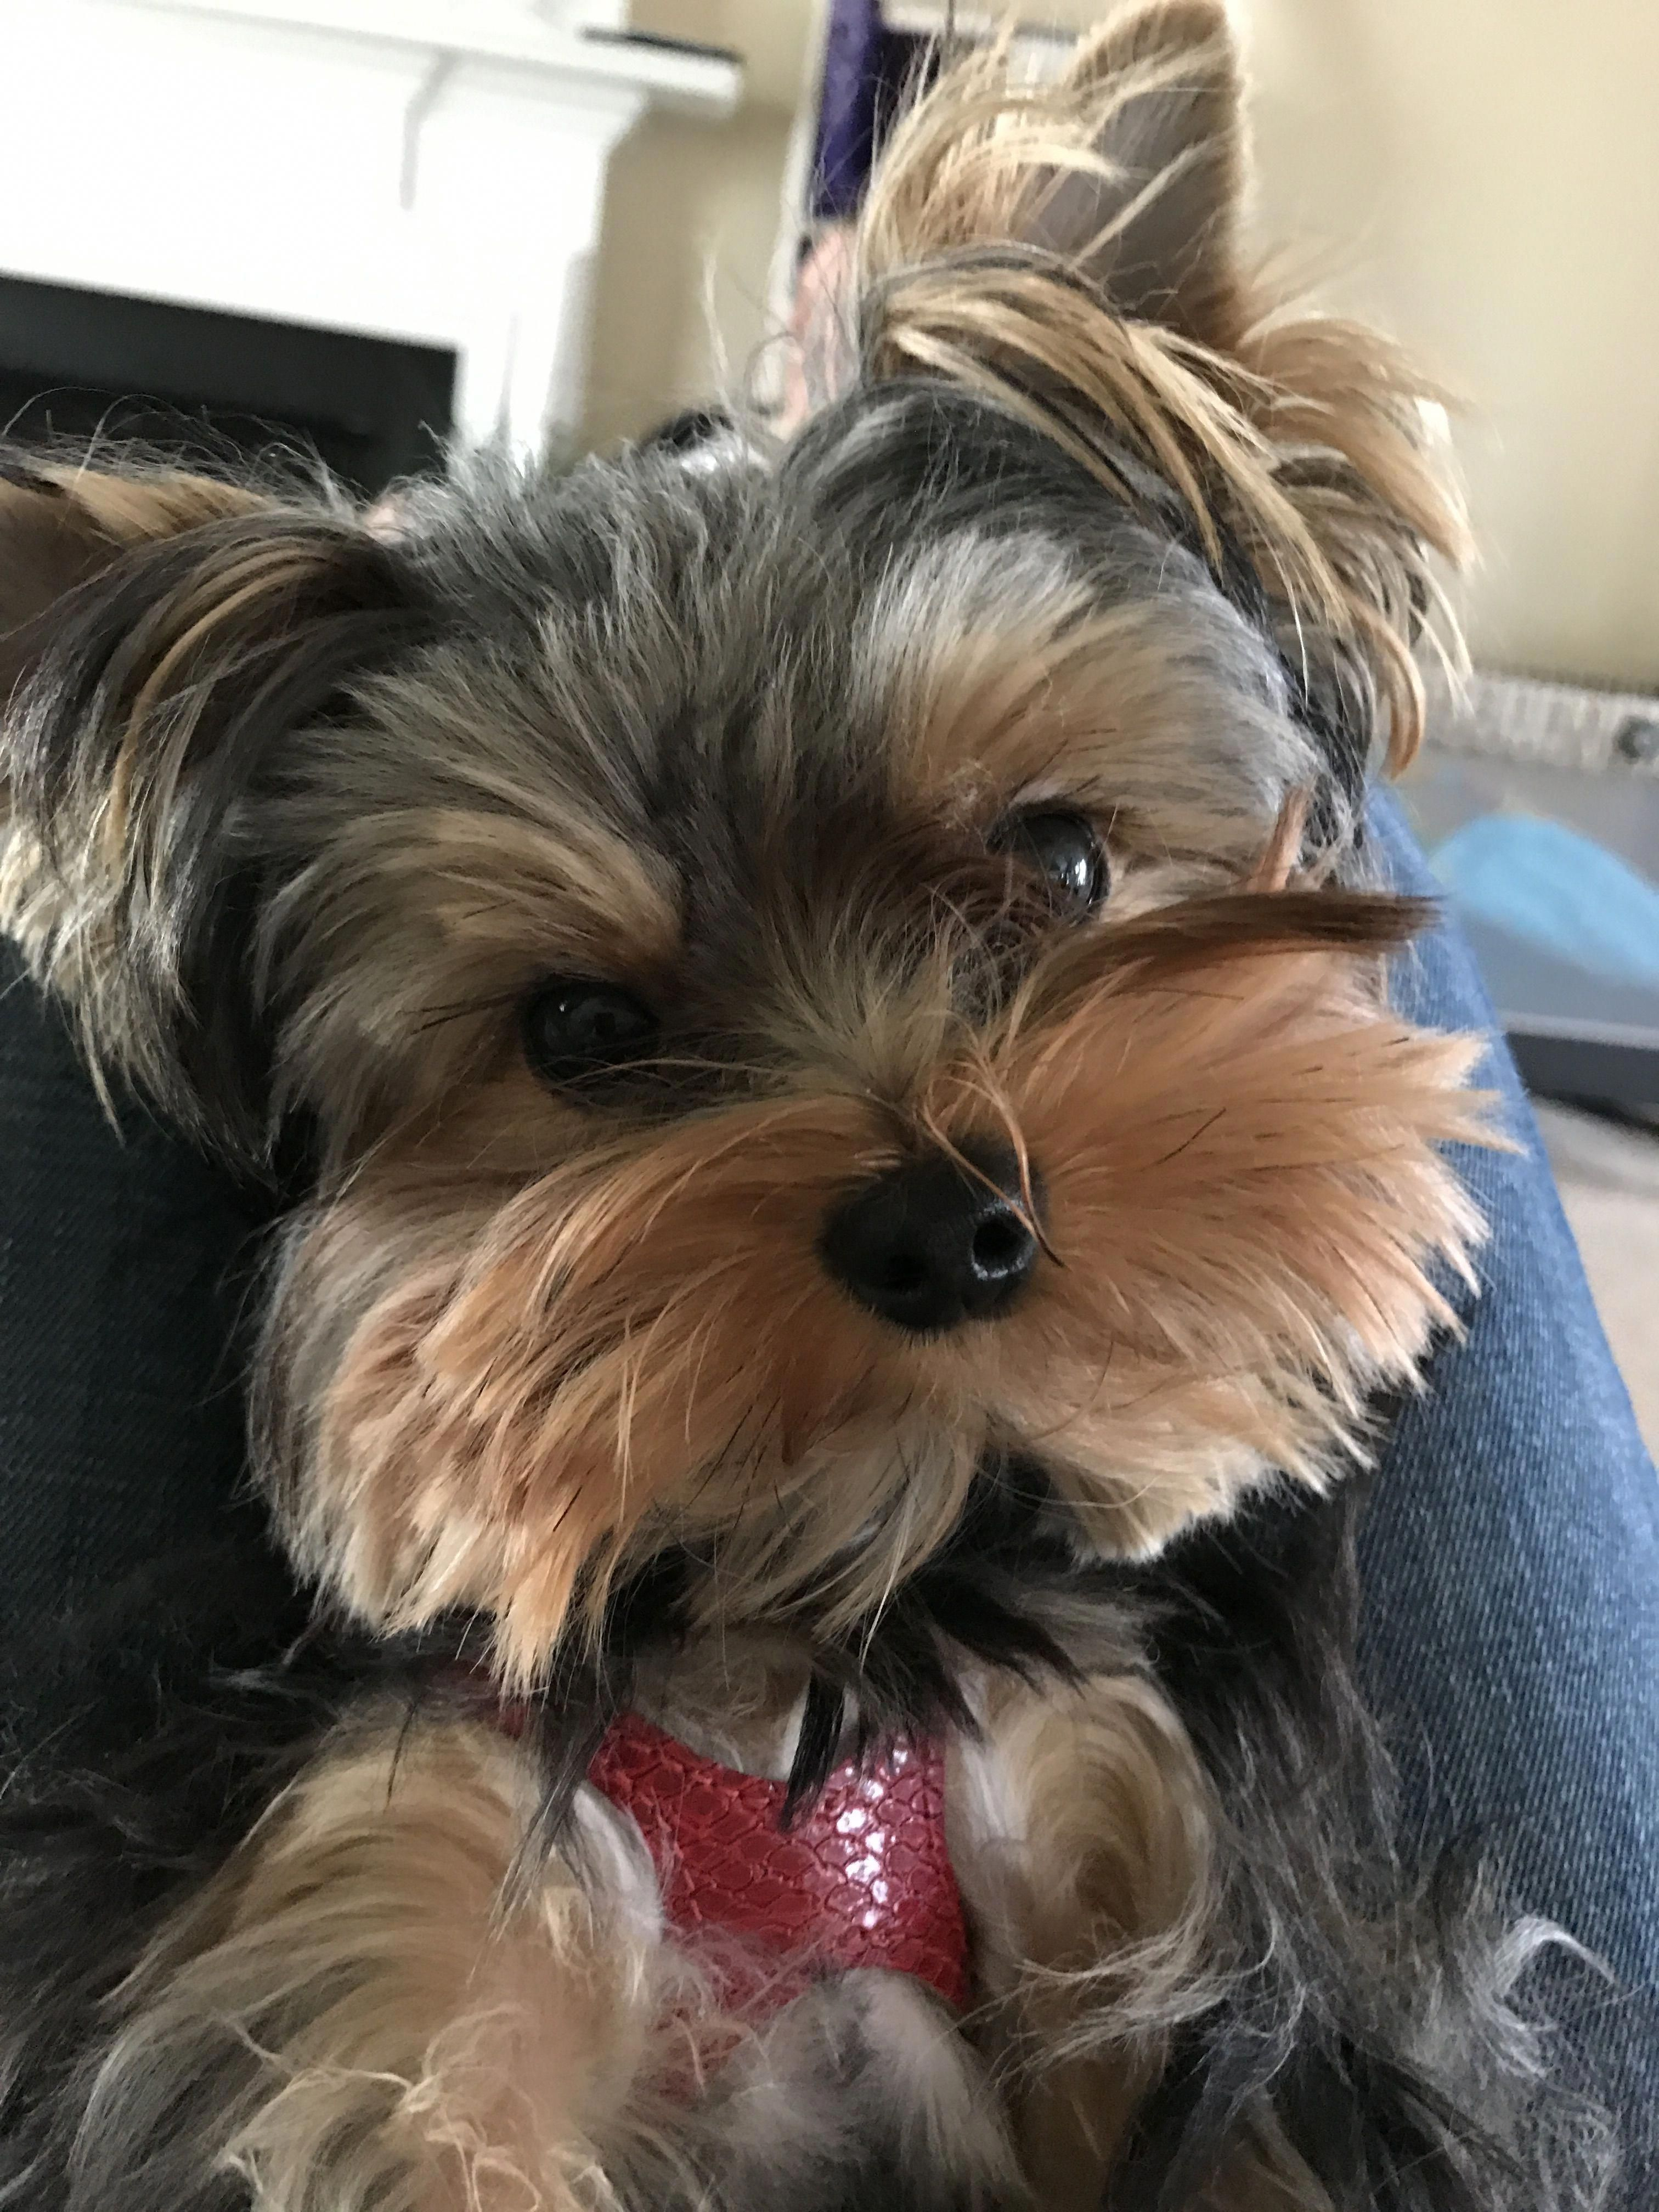 Yorkshire Terrier Energetic And Affectionate Yorkshire Terrier Yorkshire Terrier Puppies Terrier